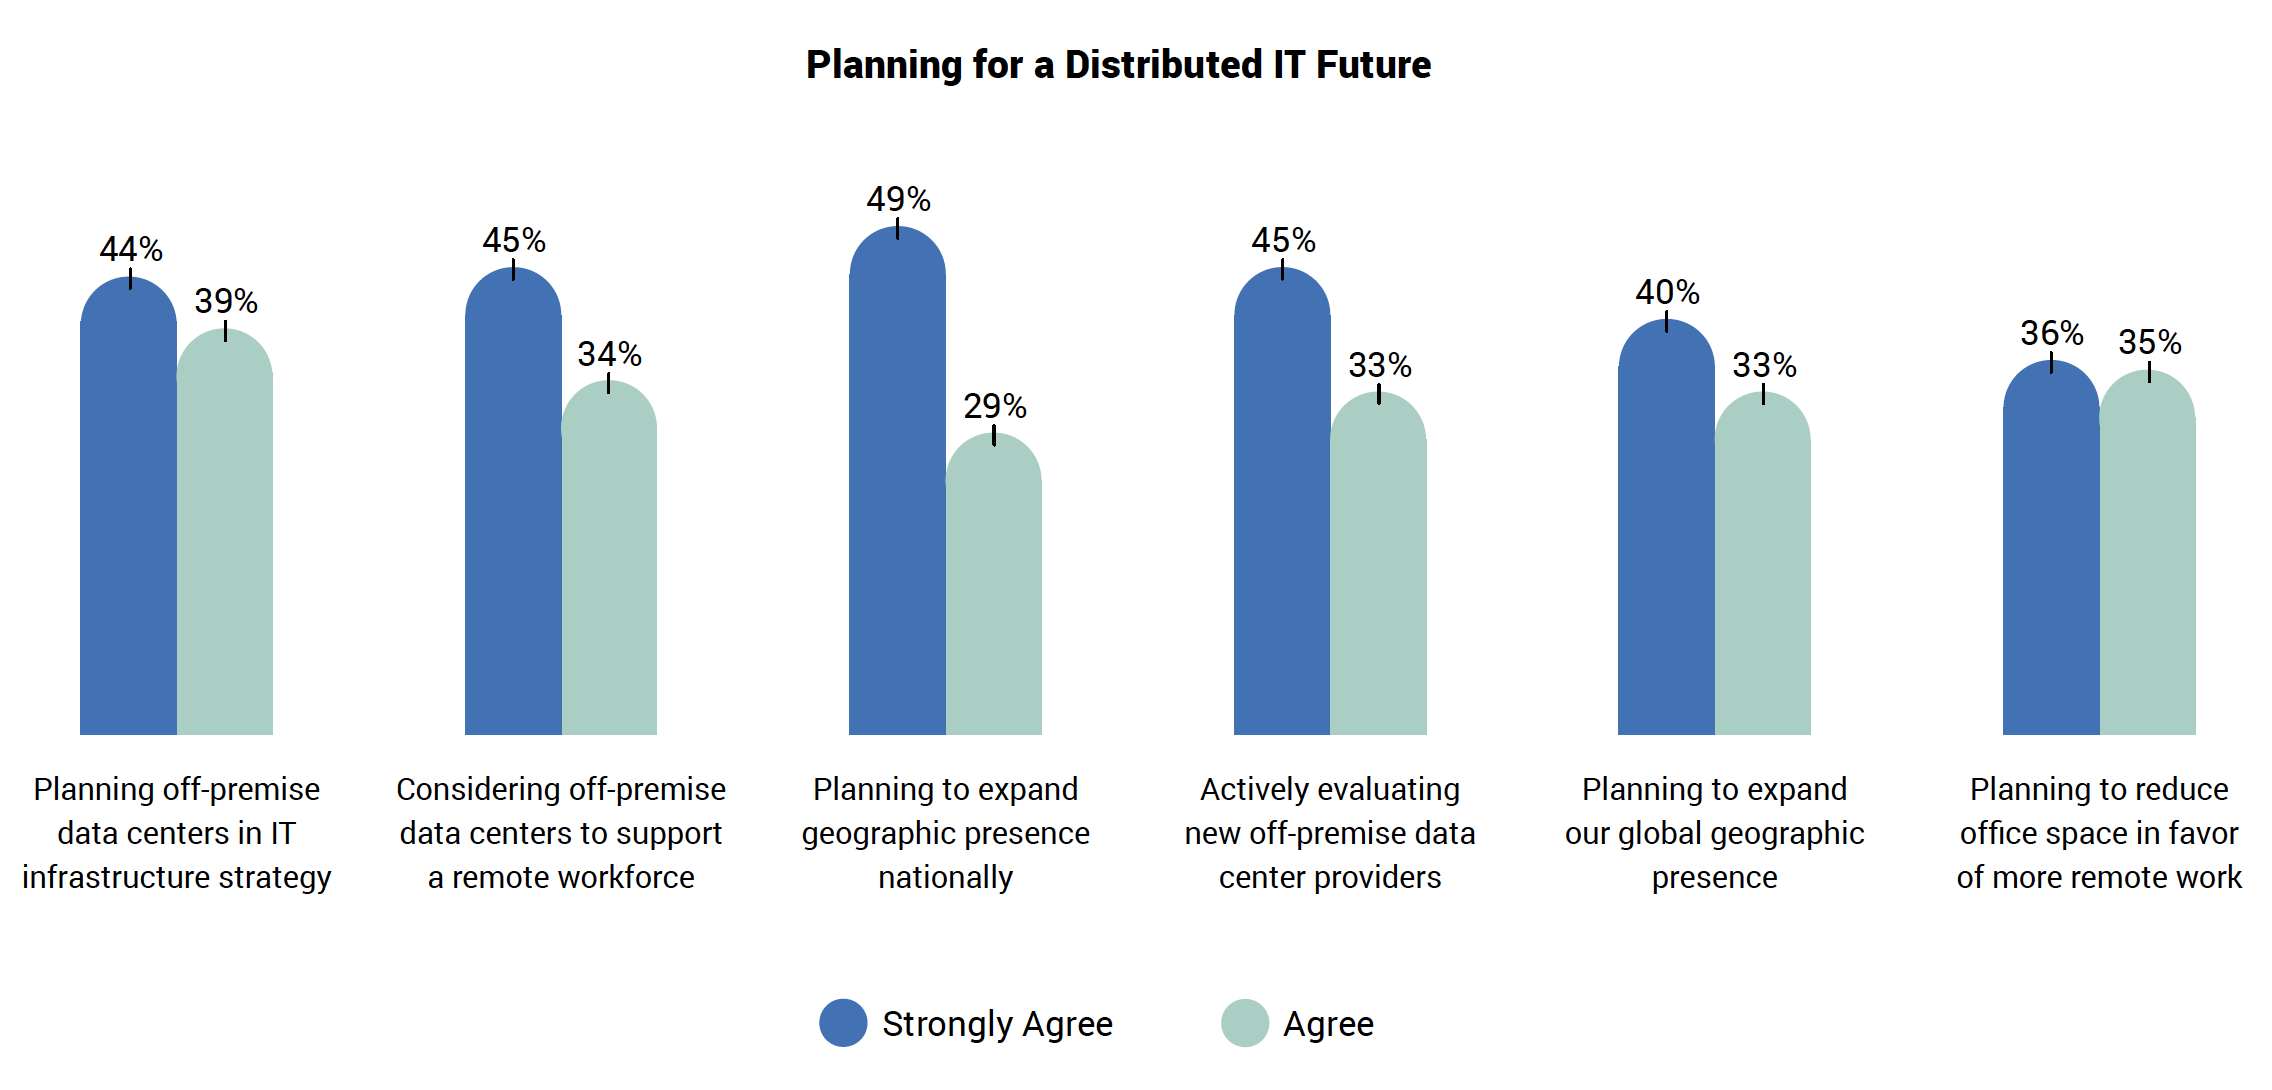 Planning for a Distributed IT Future